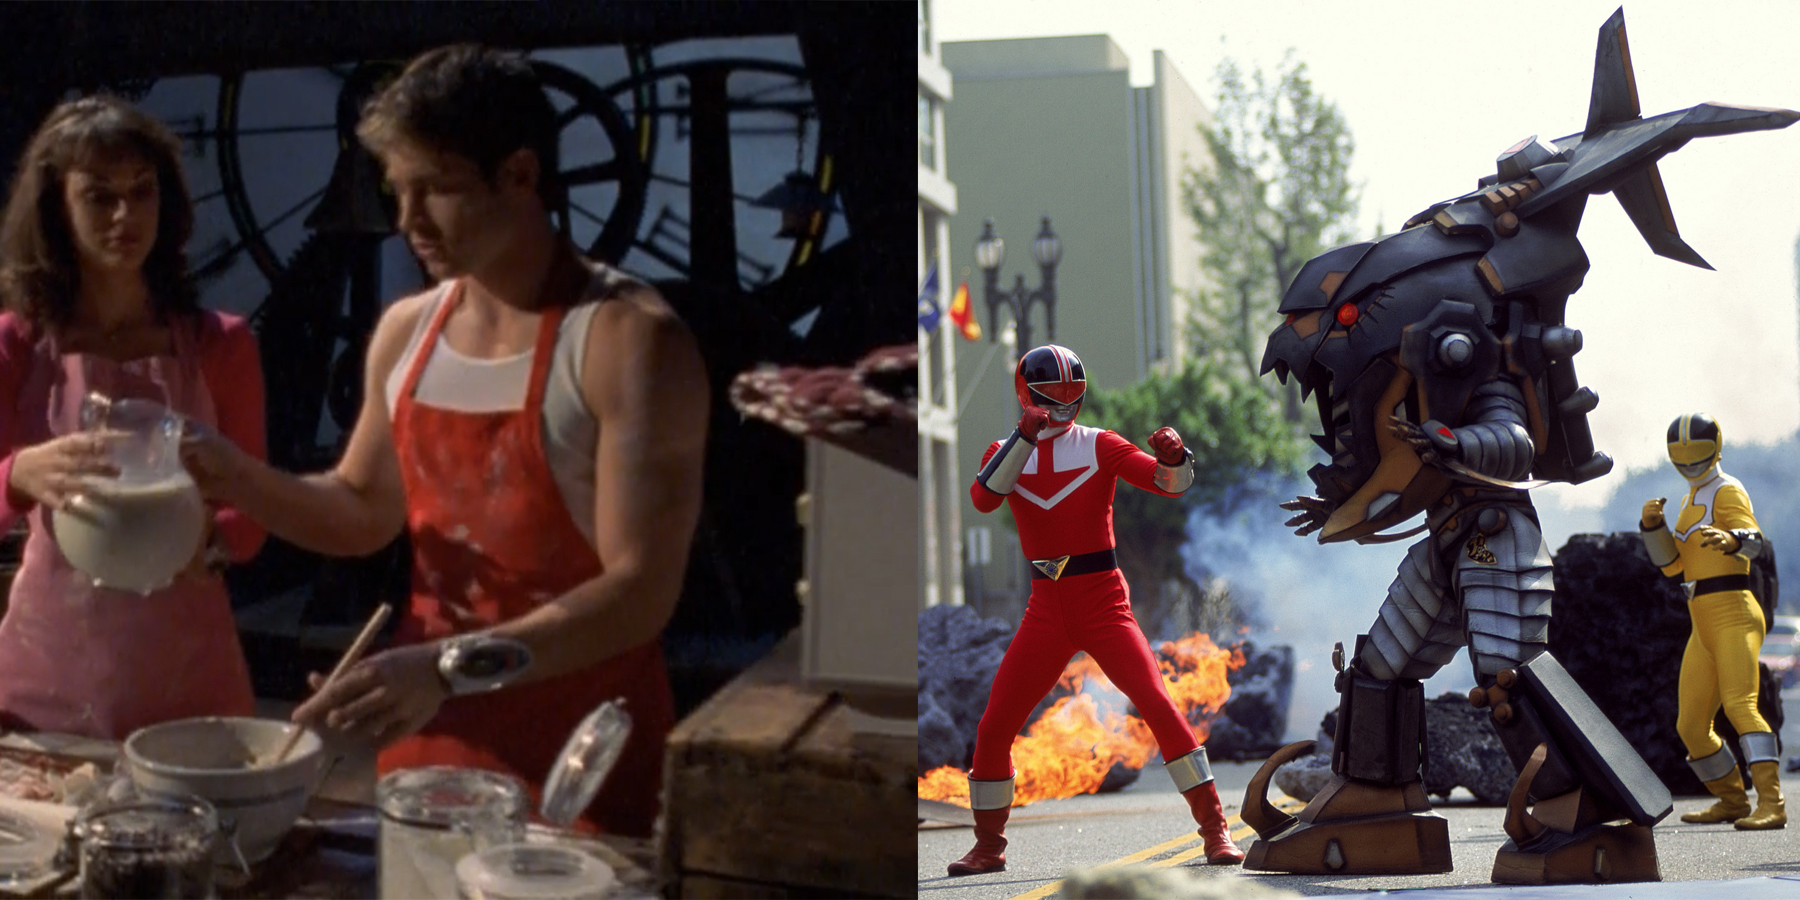 Power Rangers: Every Red Ranger, Ranked From Worst To Best